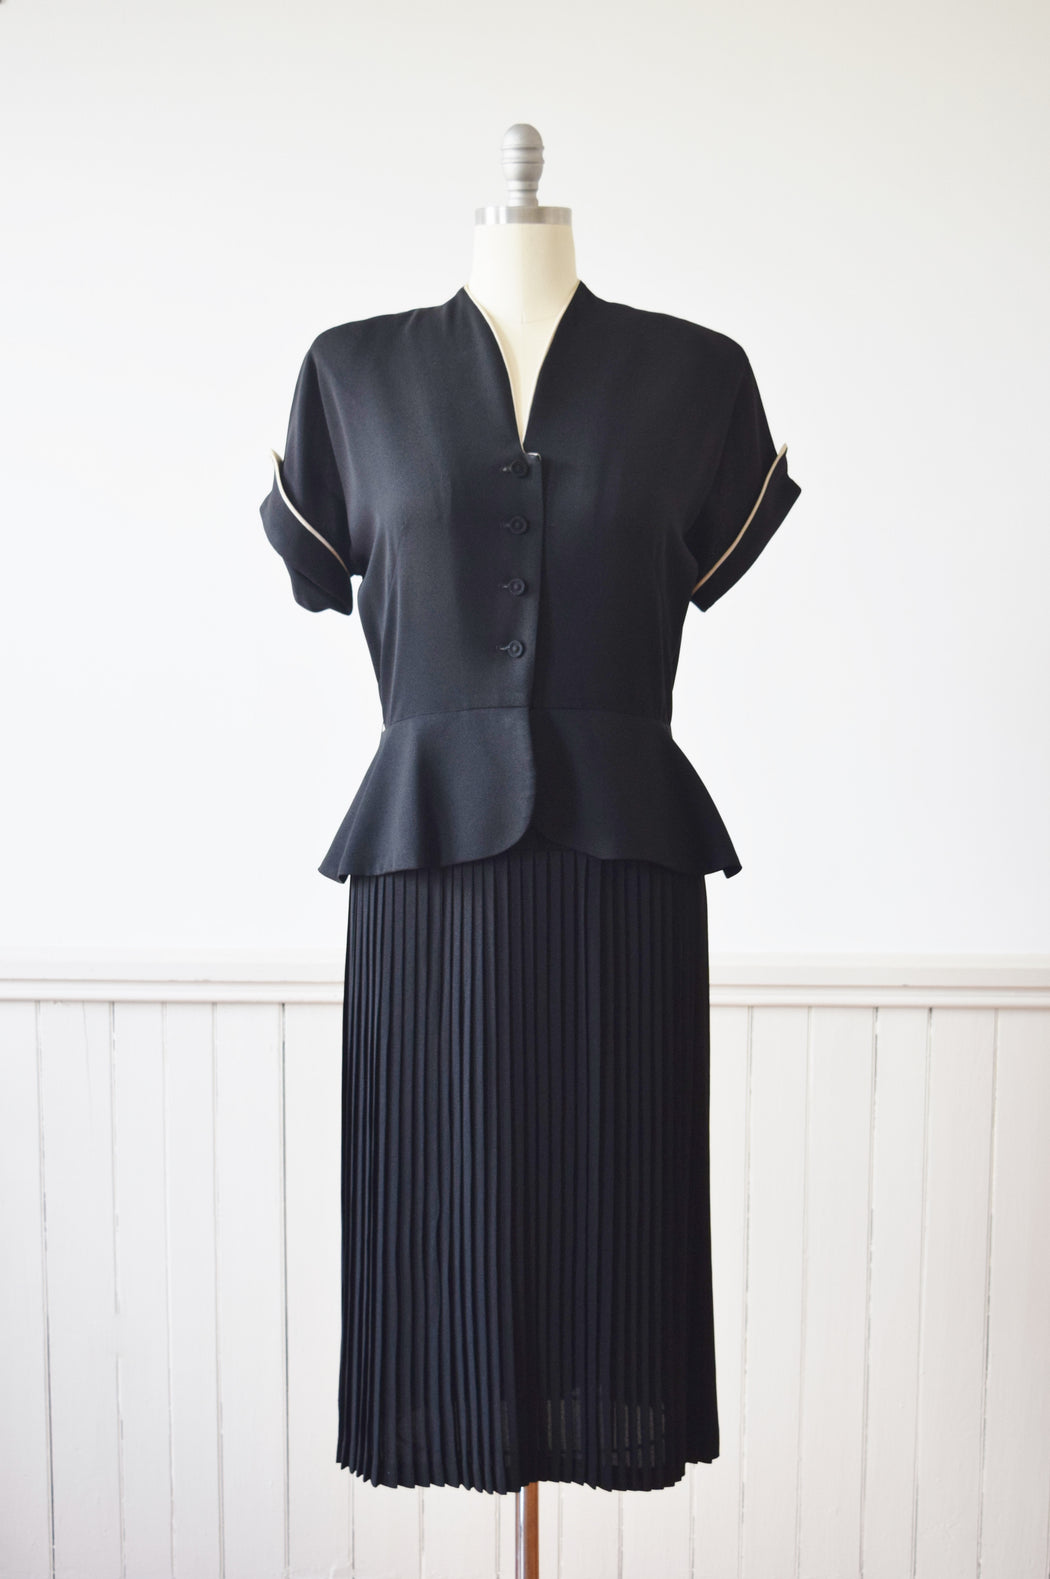 1940s Pleated Black Dress with Peplum Waist | M